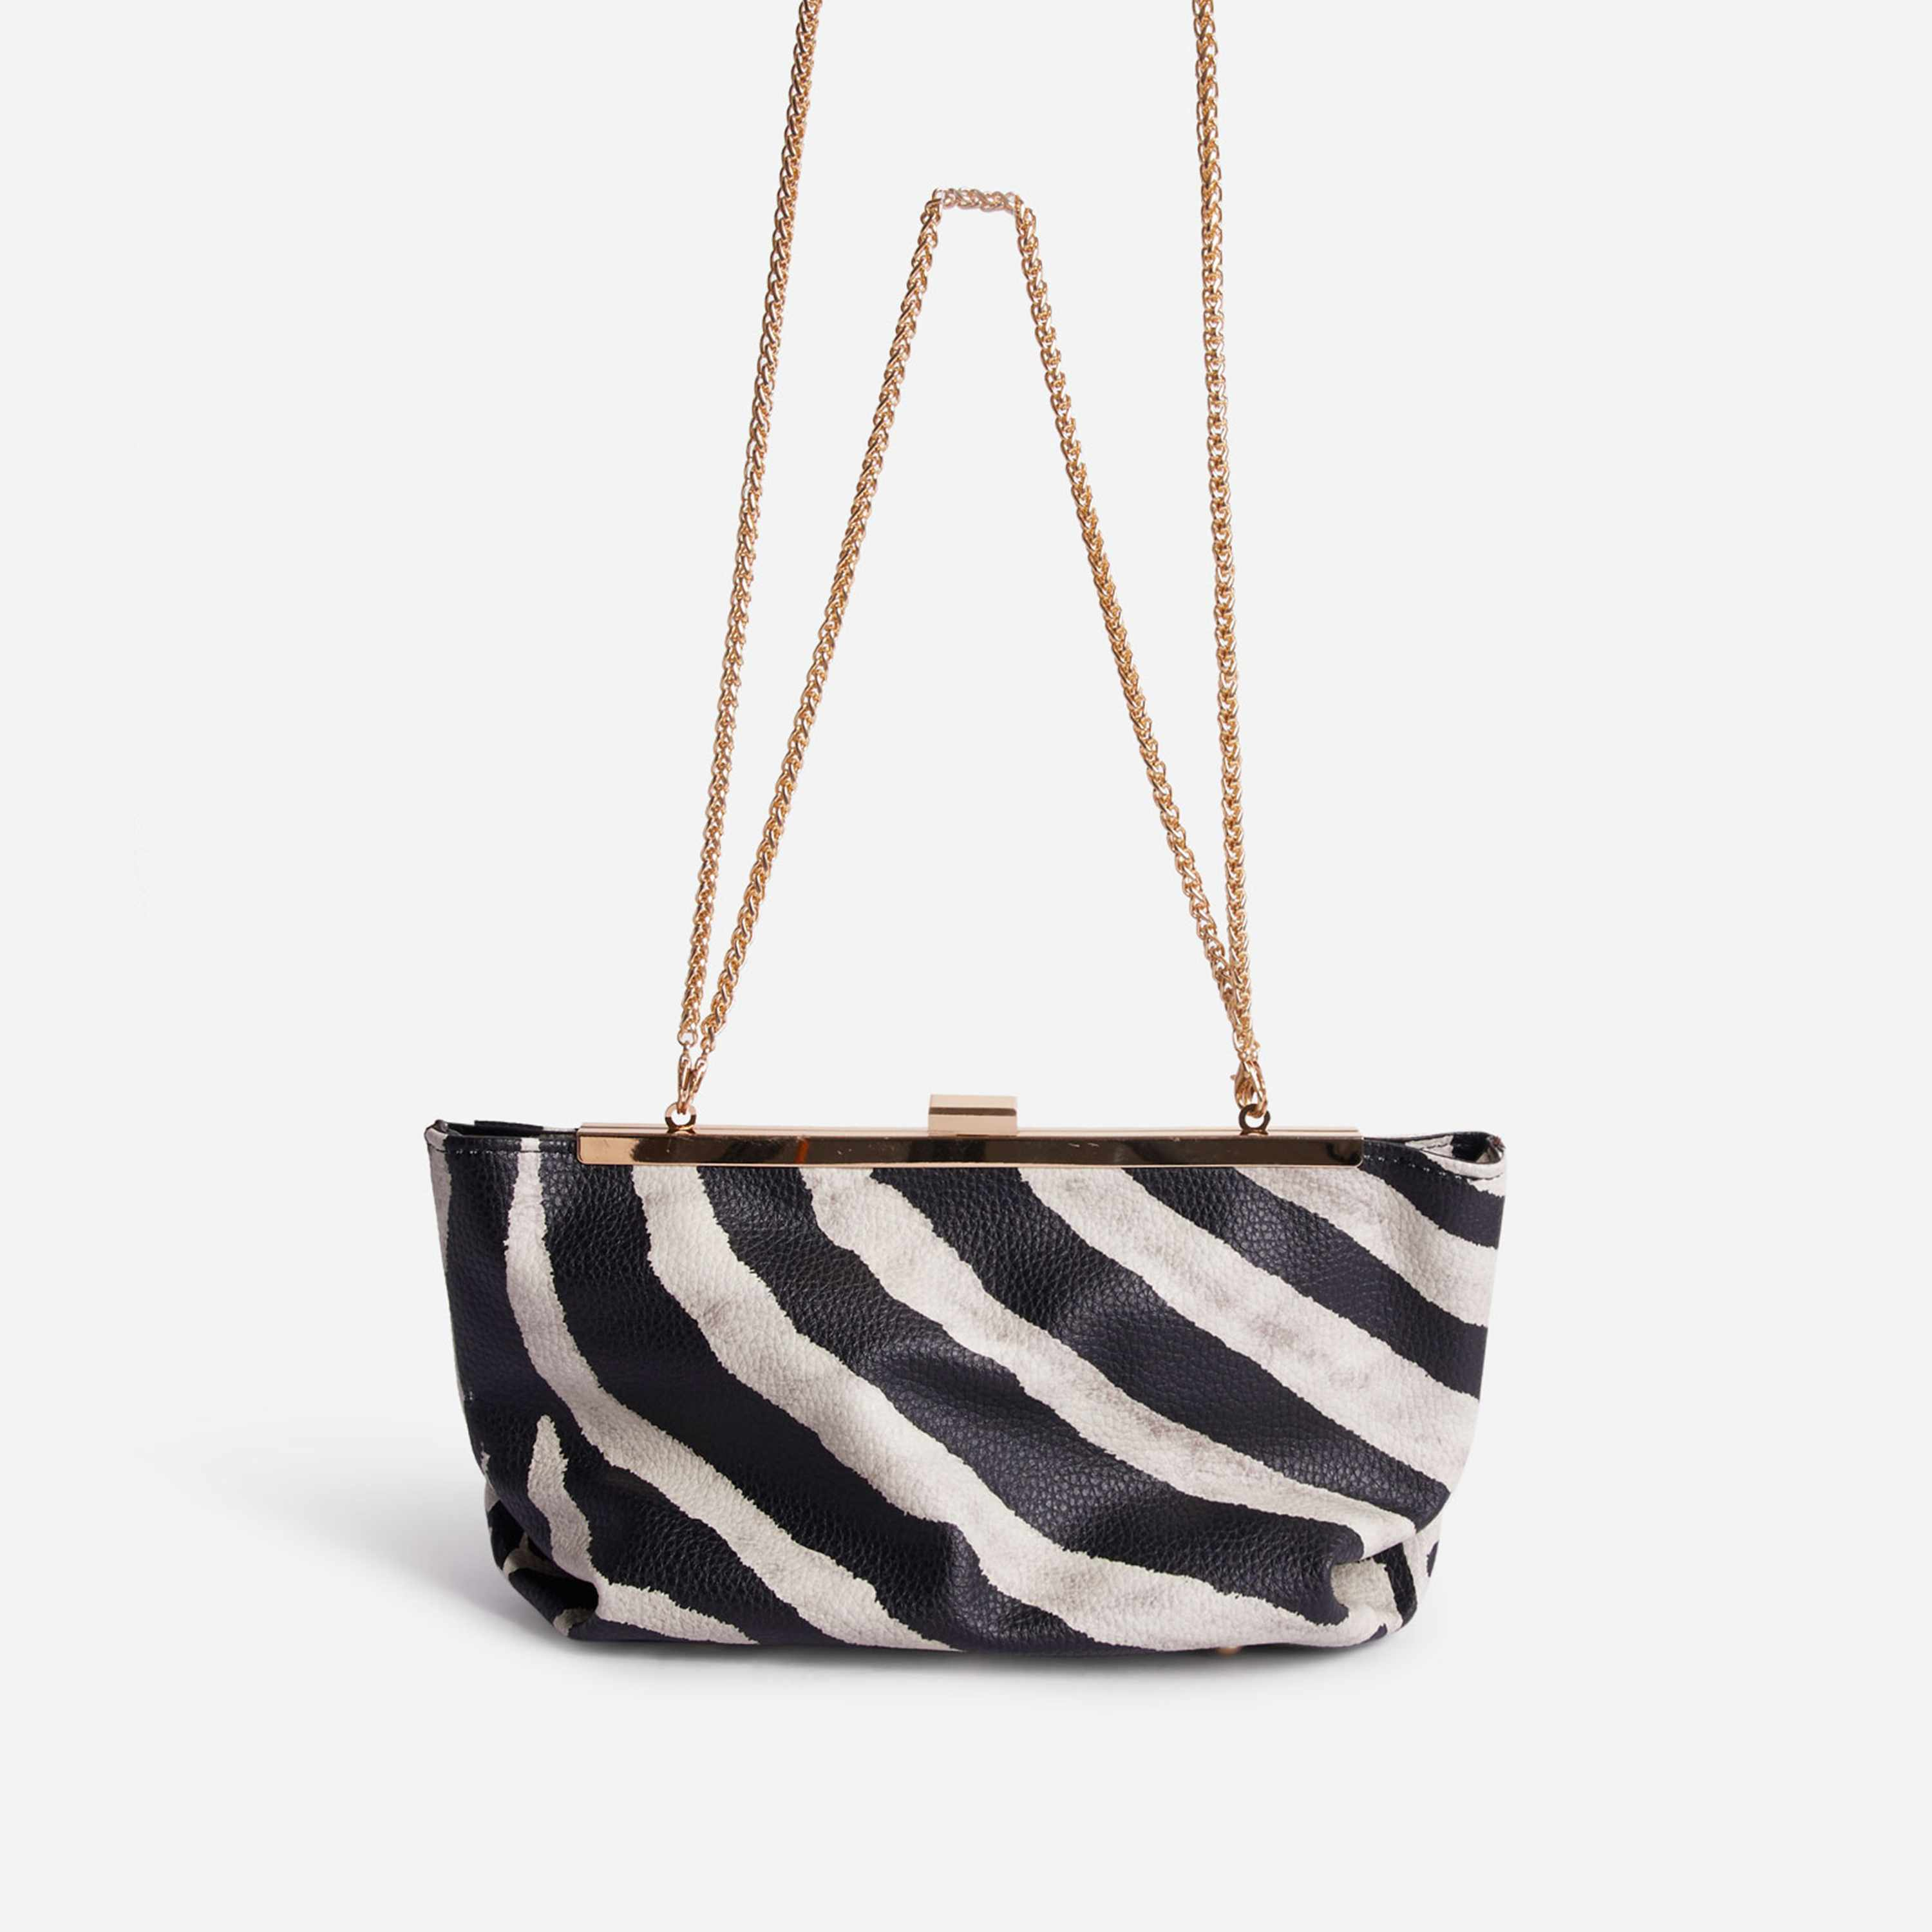 Sahara Chain Detail Cross Body Bag In Zebra Print Faux Leather